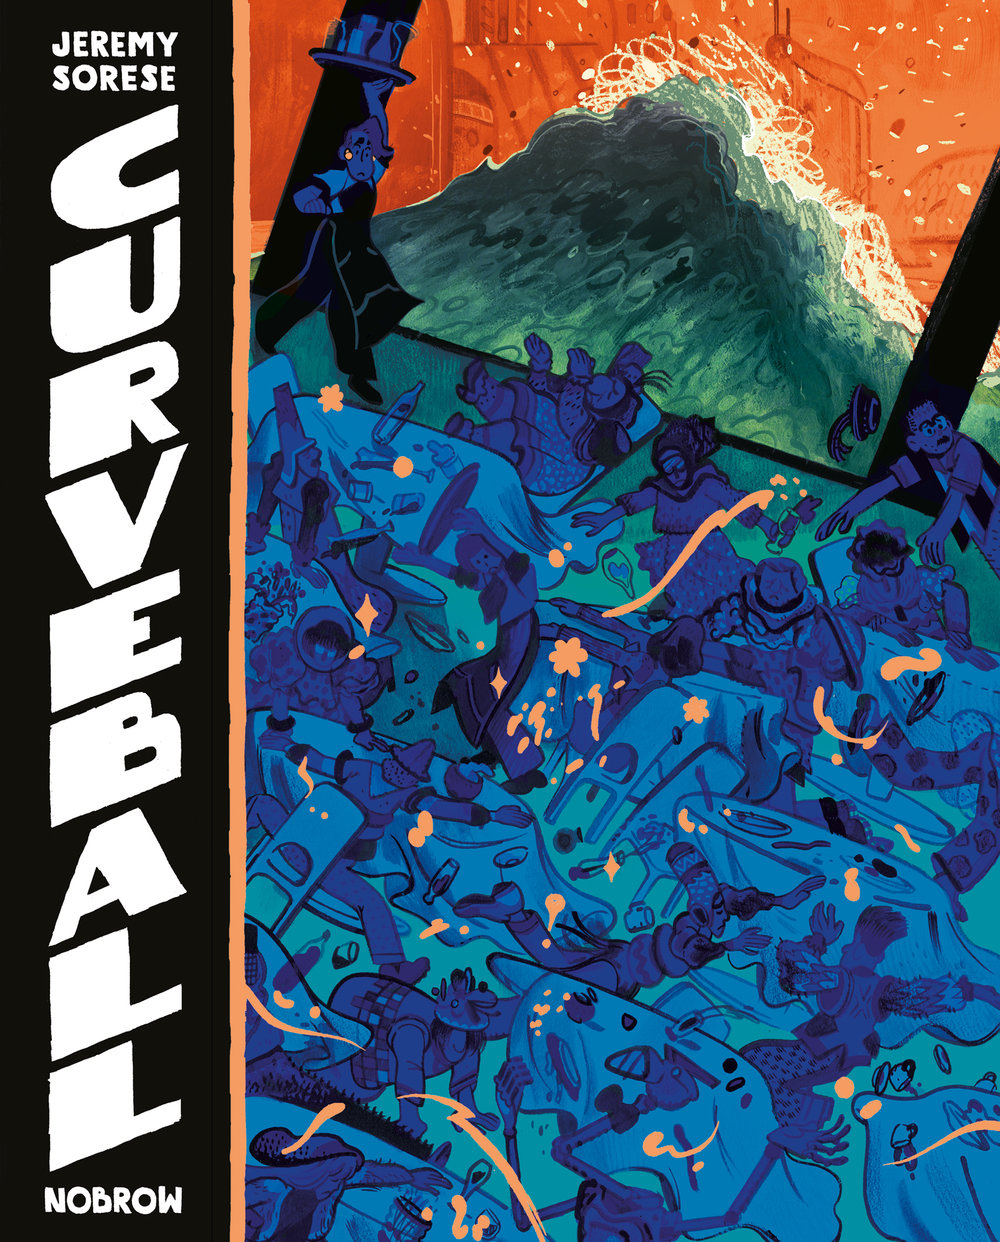 - CURVEBALL (Nobrow Press, Fall 2015)2016 Lambda Literary Award finalistTranslations: rightsandlicensing@nobrow.net Italy (Bao Publishing)Curveball is a science fiction graphic novel telling the story of a waiter named Avery coping with the ending of a difficult relationship. Having spent years attempting to build something substantial with an indecisive sailor named Christophe, Avery stubbornly holds on despite the mounting evidence against him. The idea of the relationship has eclipsed its reality and in Avery's already troubled life, the allure of something dependable is a powerful force.